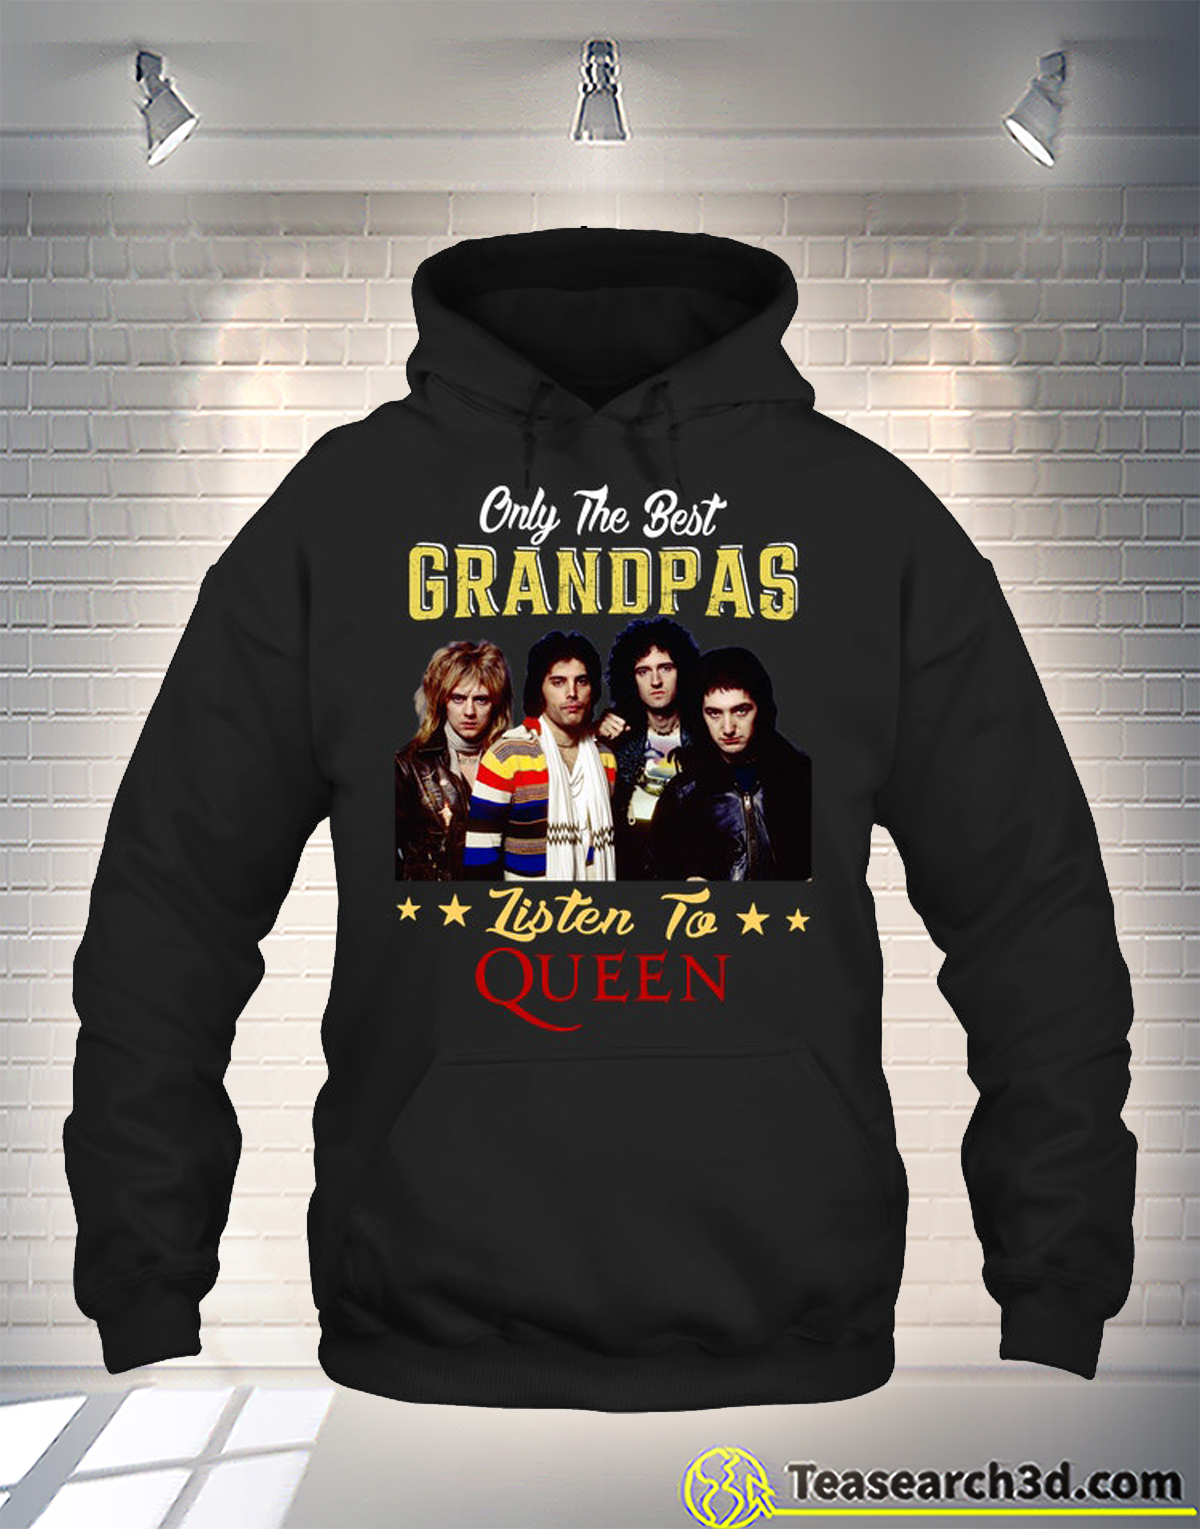 Only the best grandpas listen to the queen hoodie